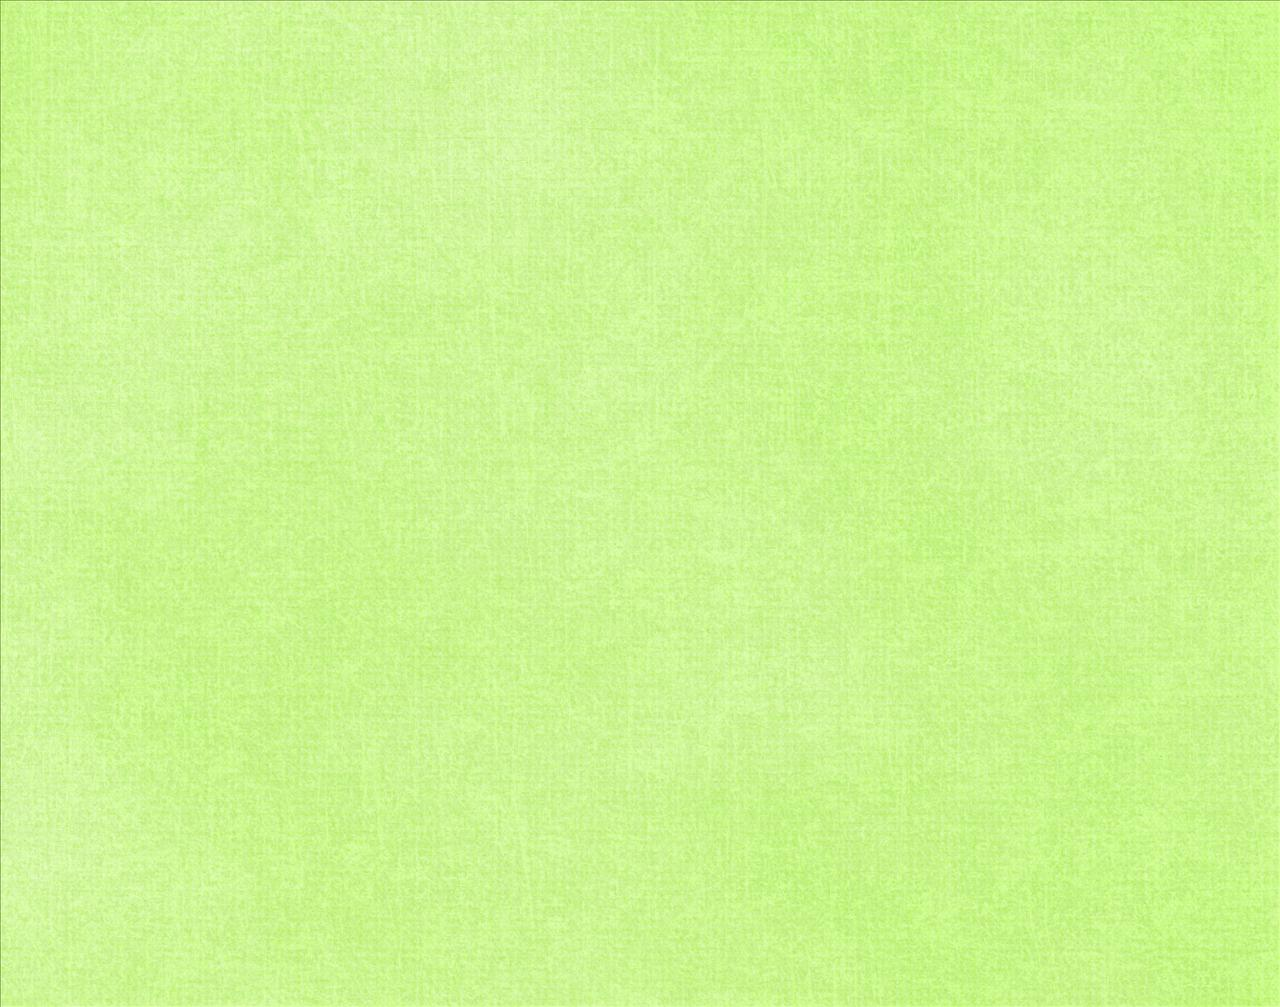 Free Download Plain Light Green Backgrounds Images